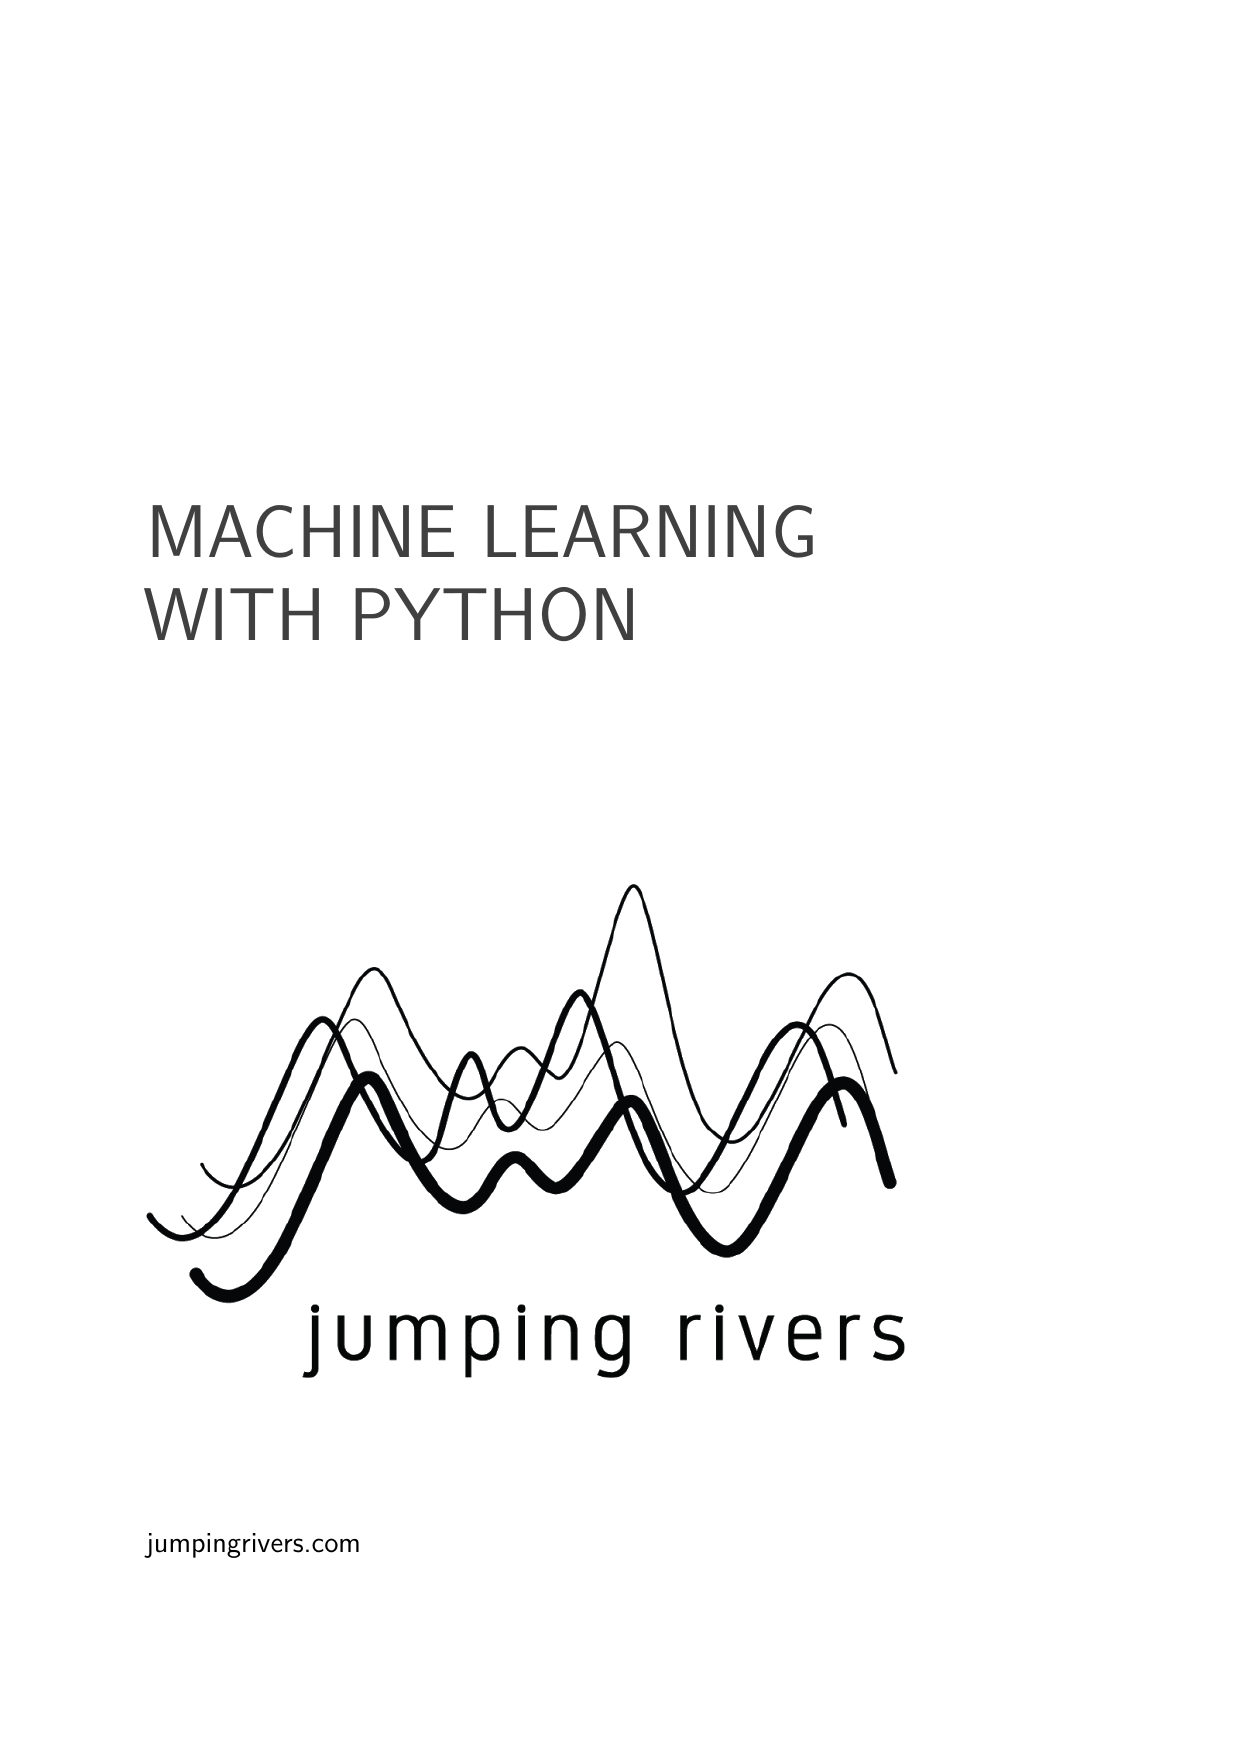 Example course material for 'Machine Learning with Python